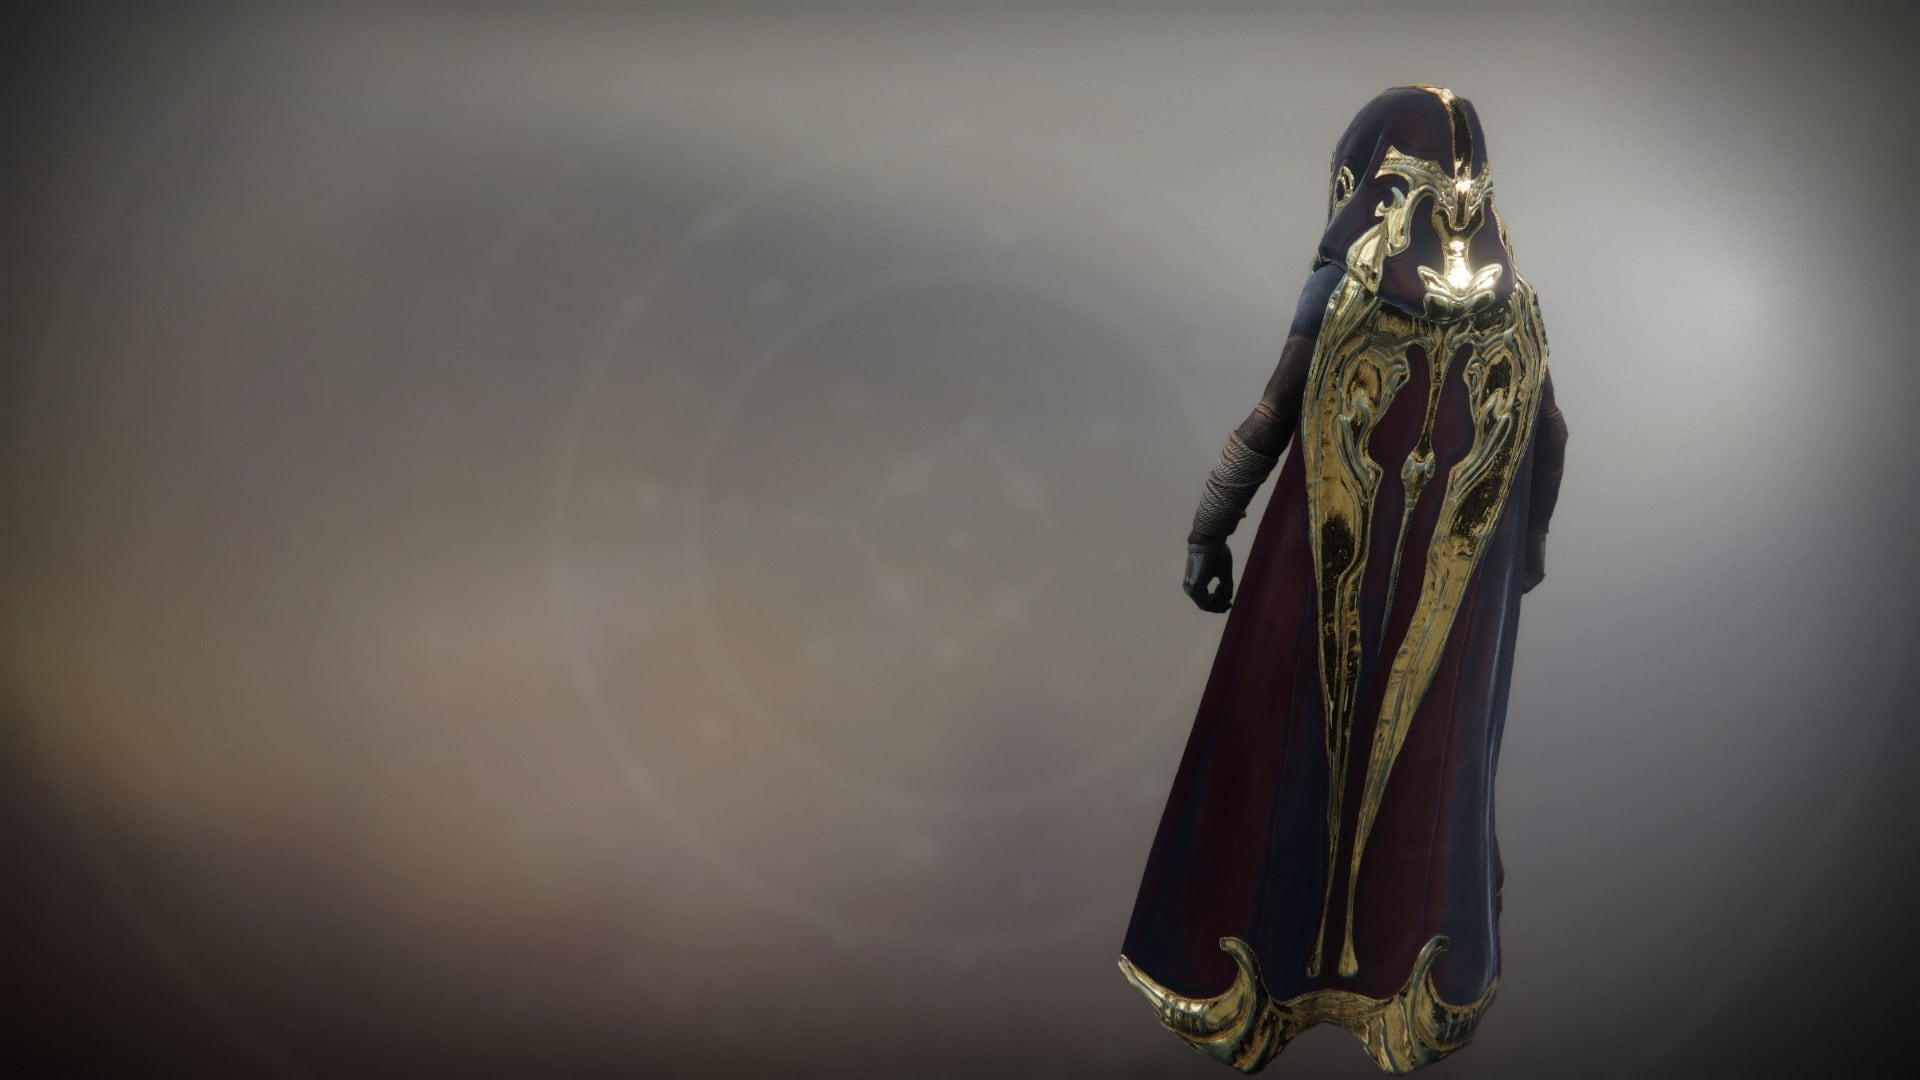 An in-game render of the Solstice Cloak (Majestic).